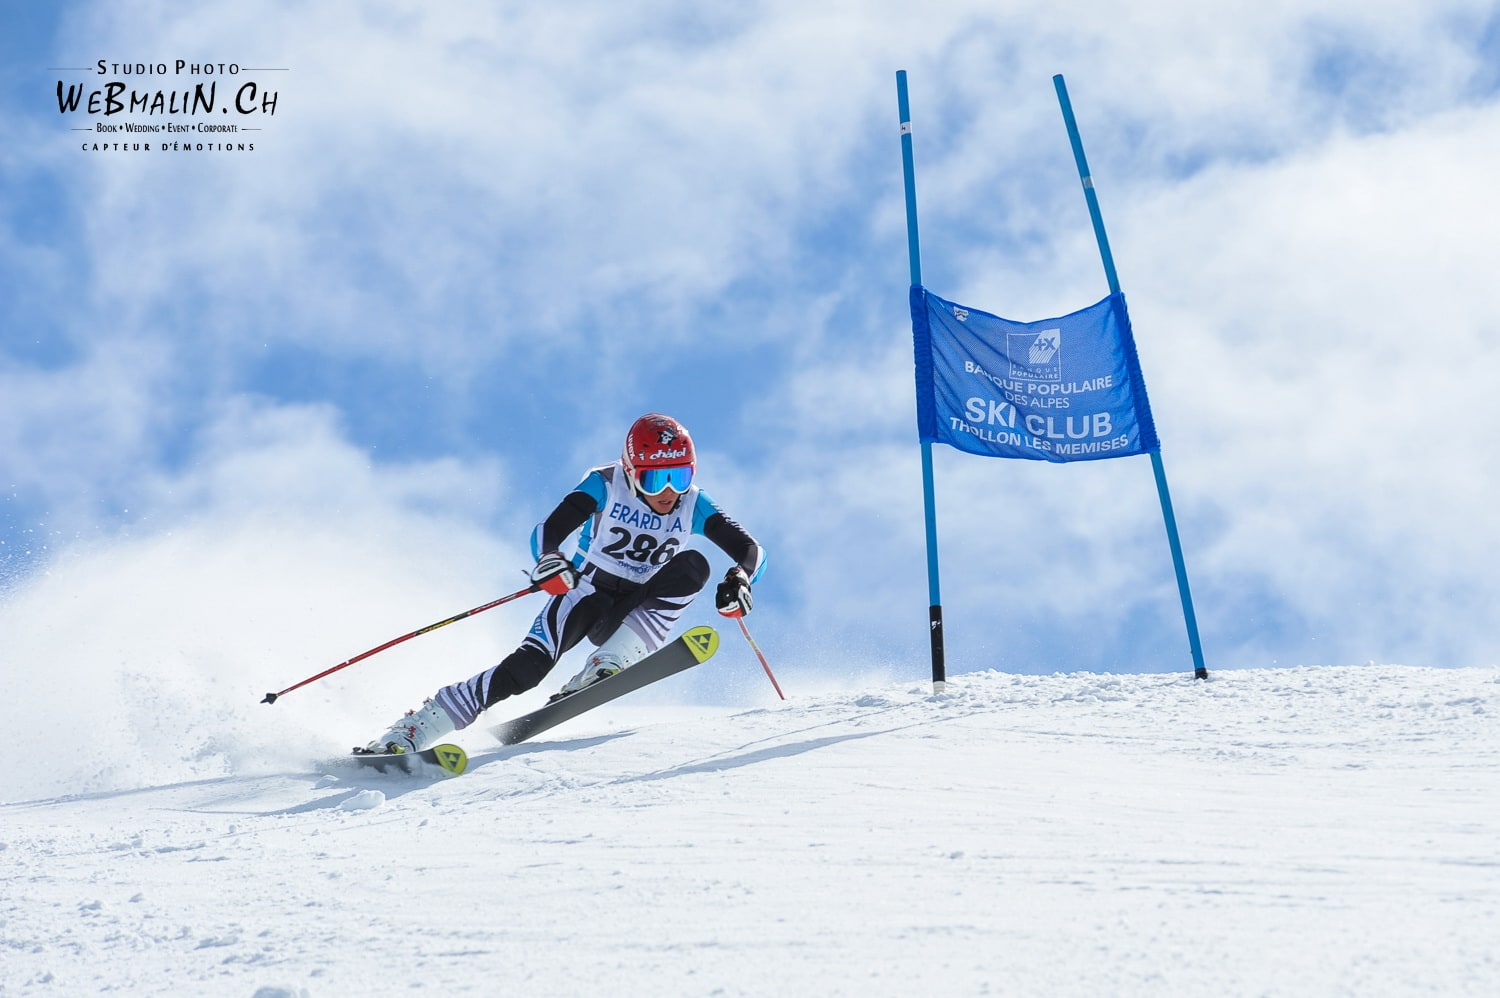 Competition Ski Club Thollon Les Memises - 1187-1